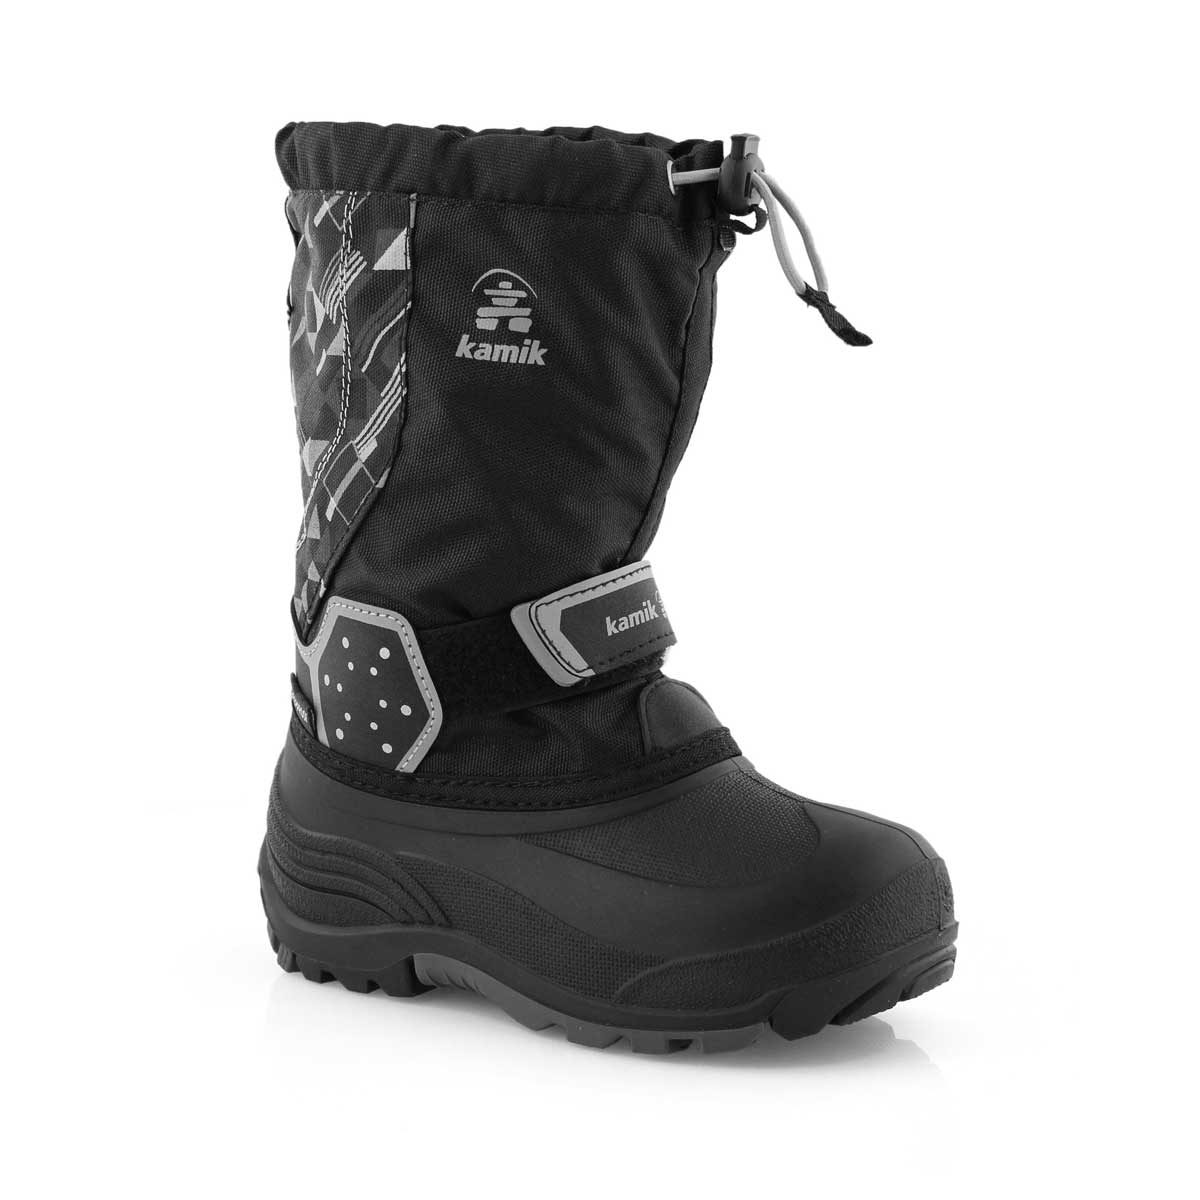 Bys IcetrackP blk/char wtpf winter boot